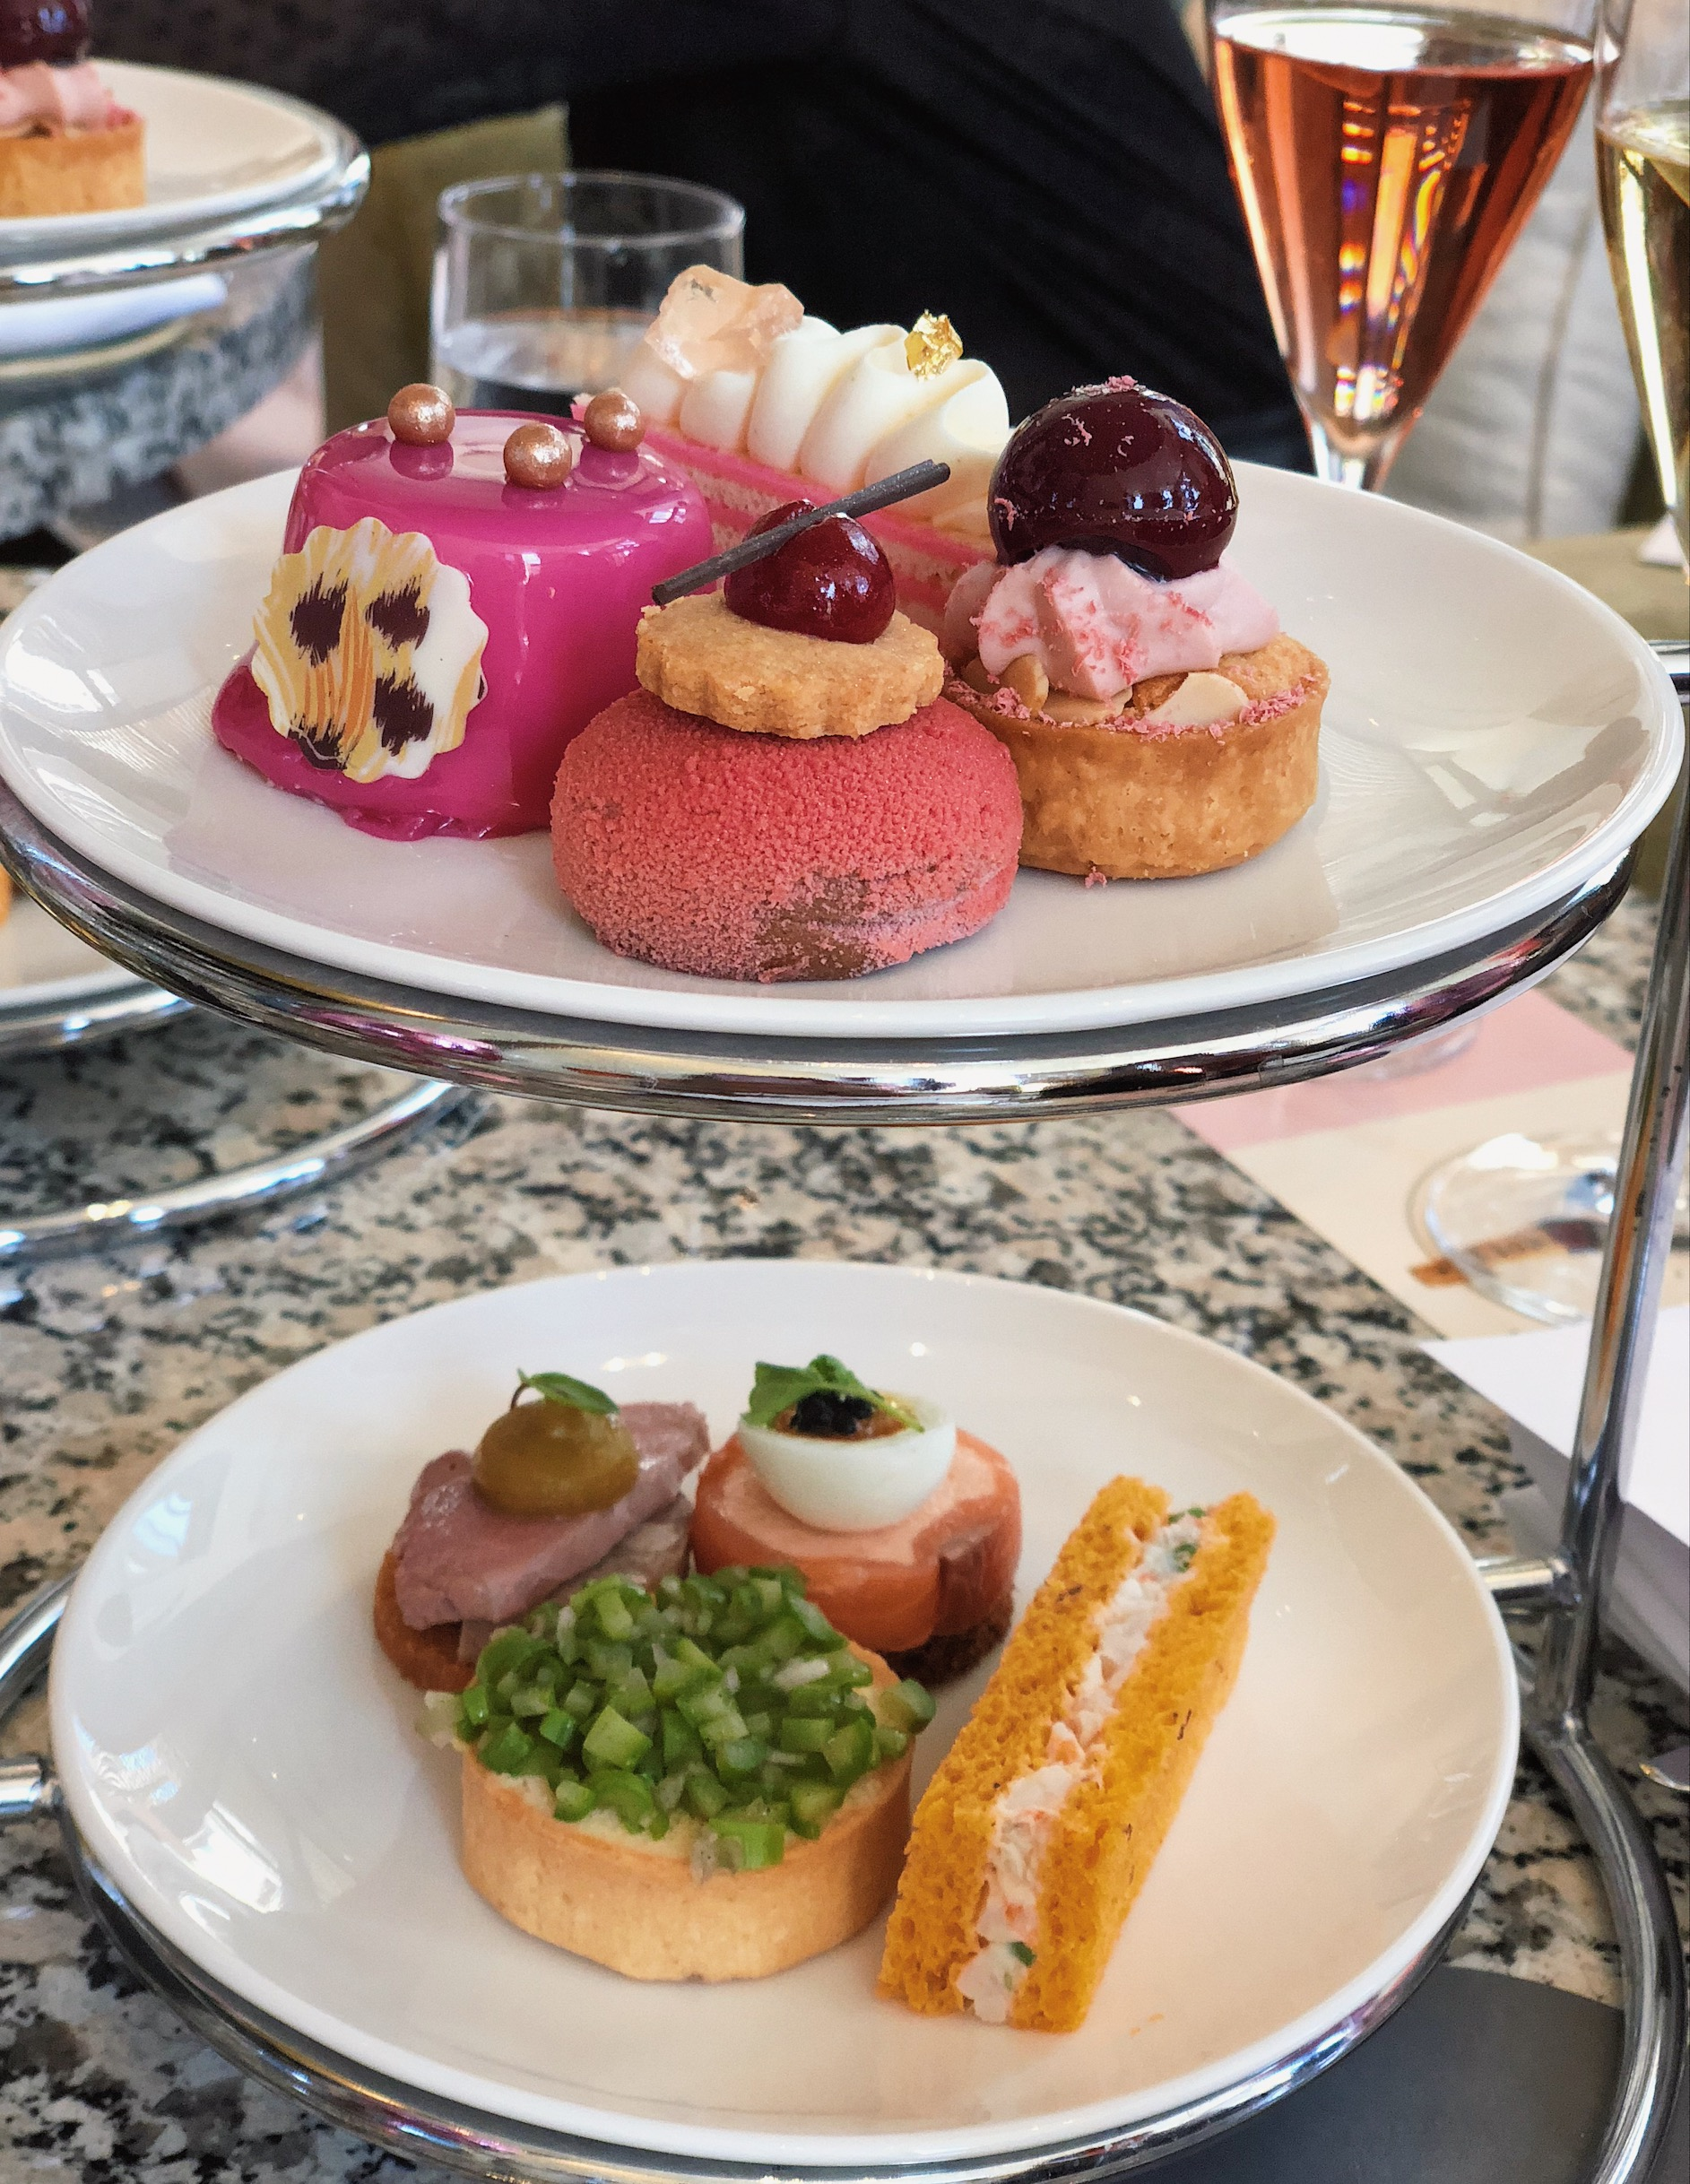 The Westin Perth High Tea setting at Haven Lounge cakes and savoury